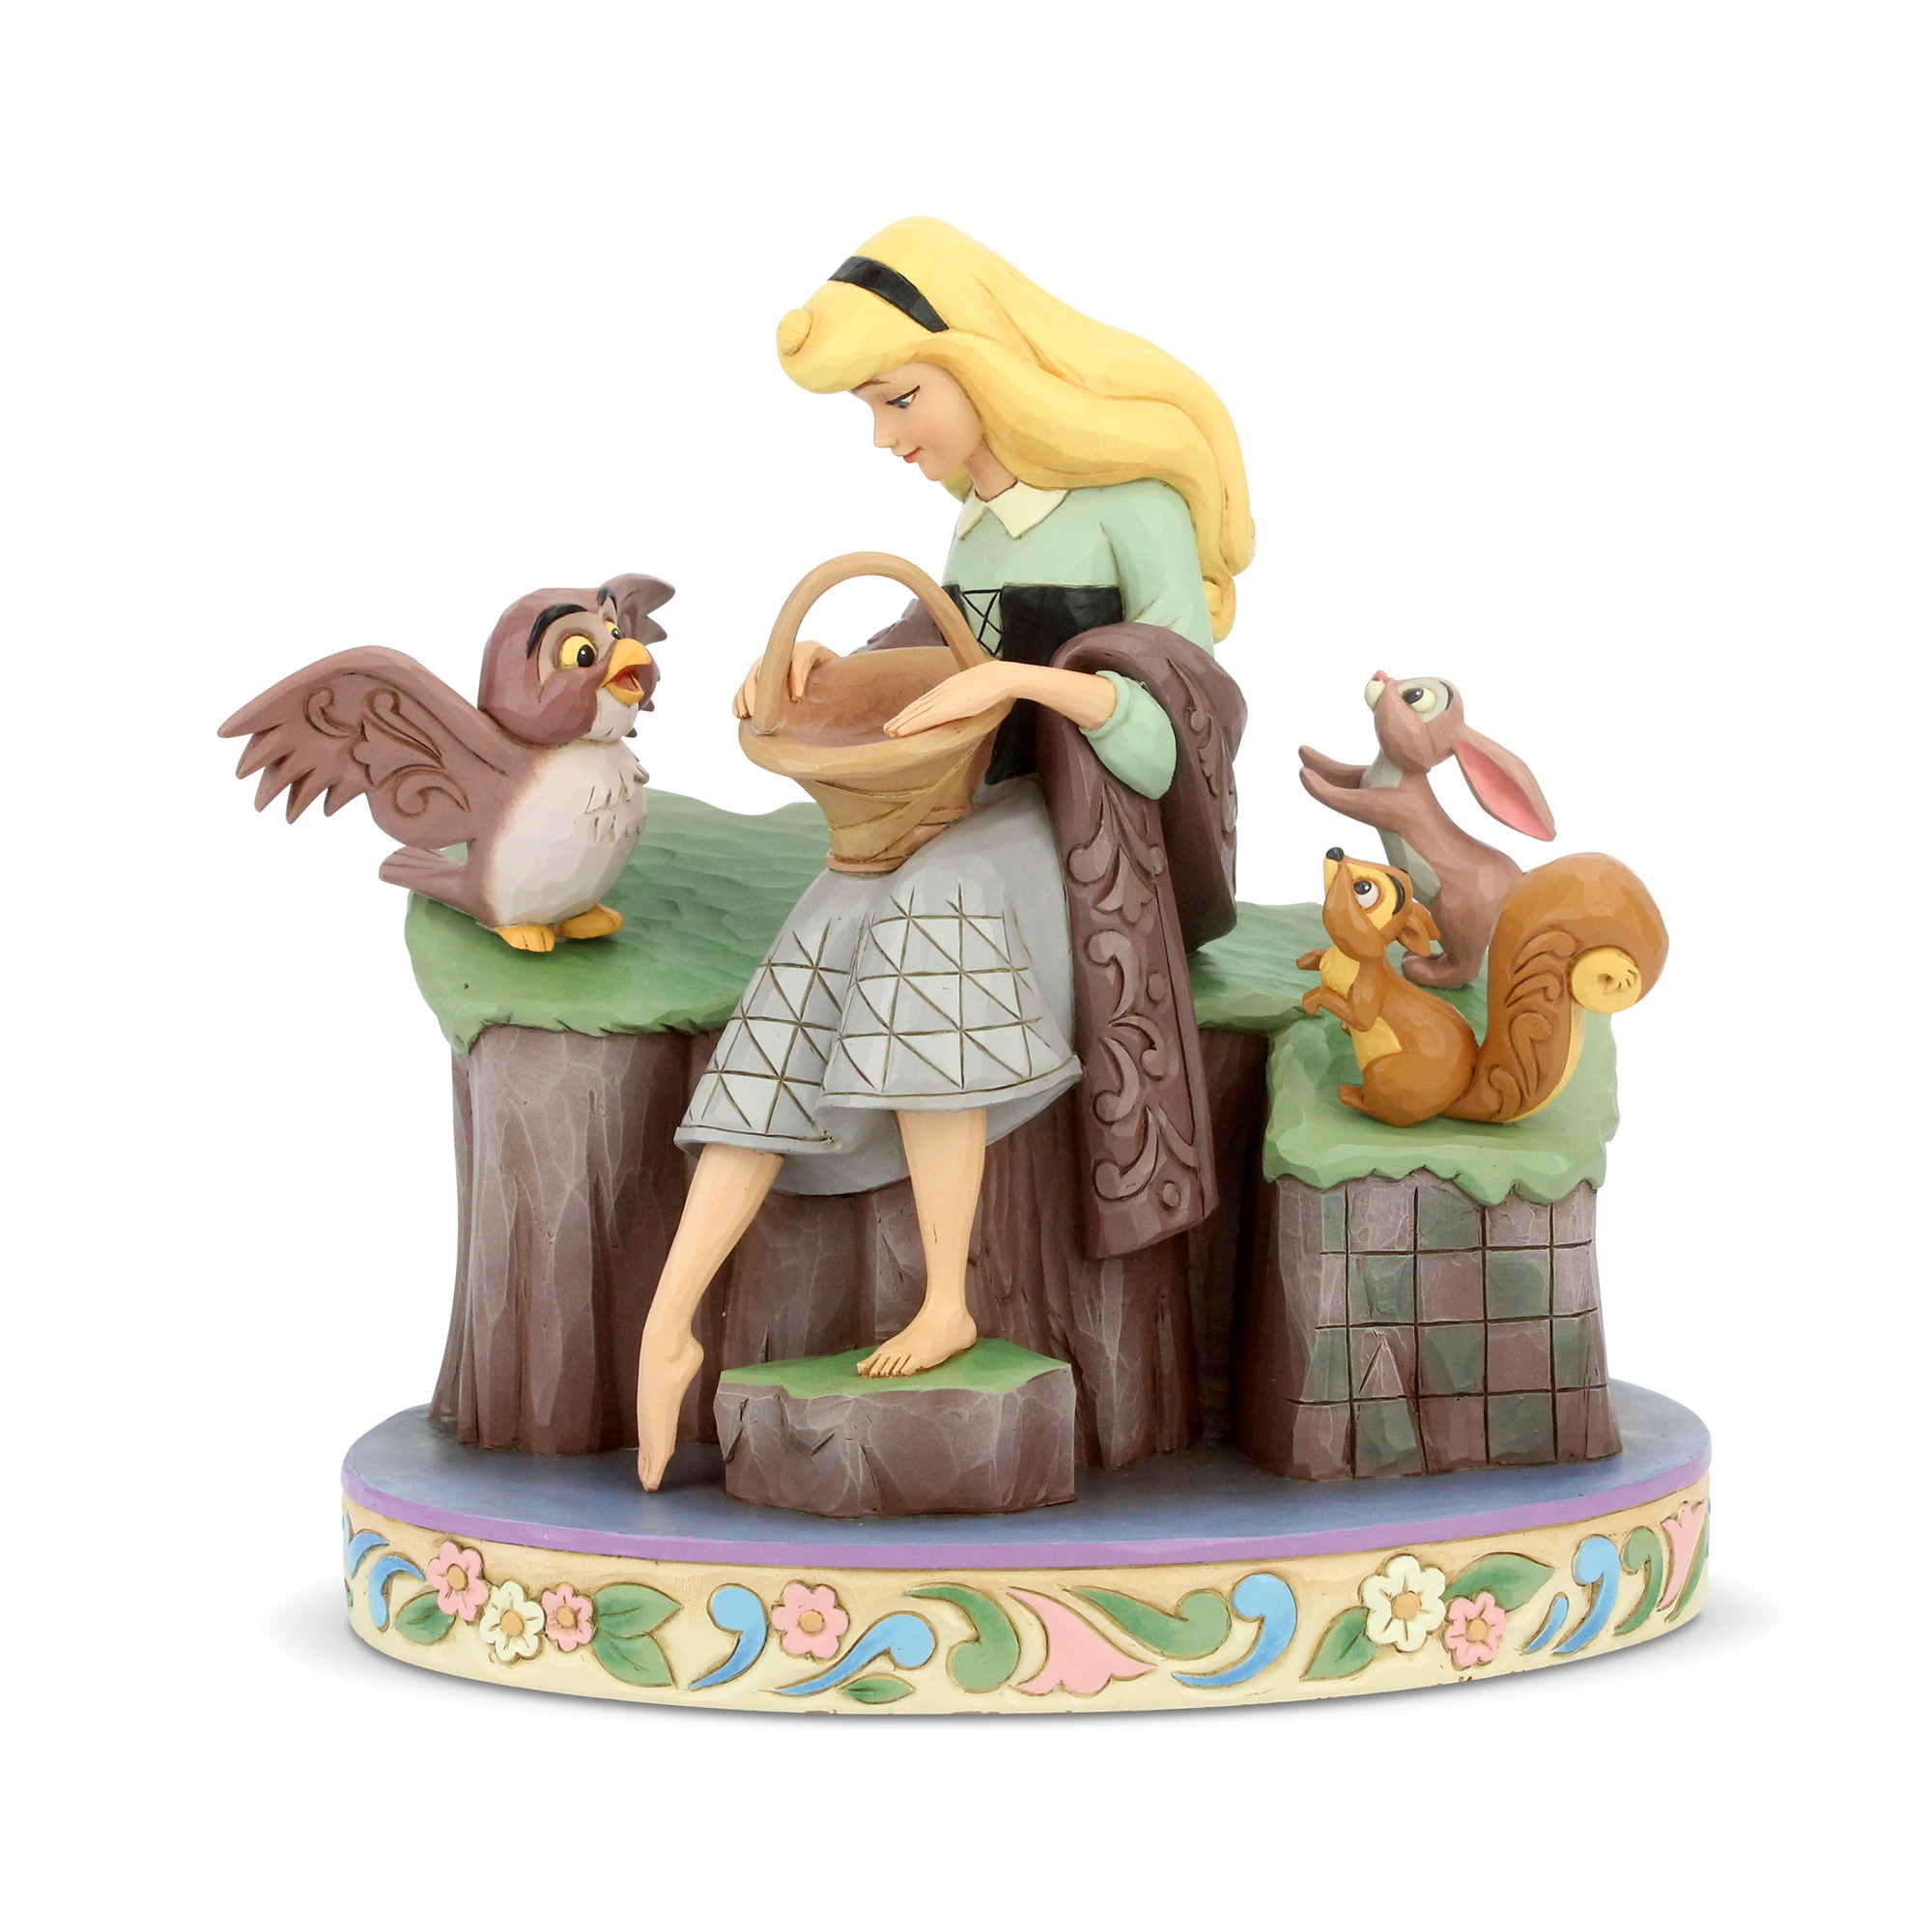 Disney Traditions 6005959 Sleeping Beauty 60th Anniversary